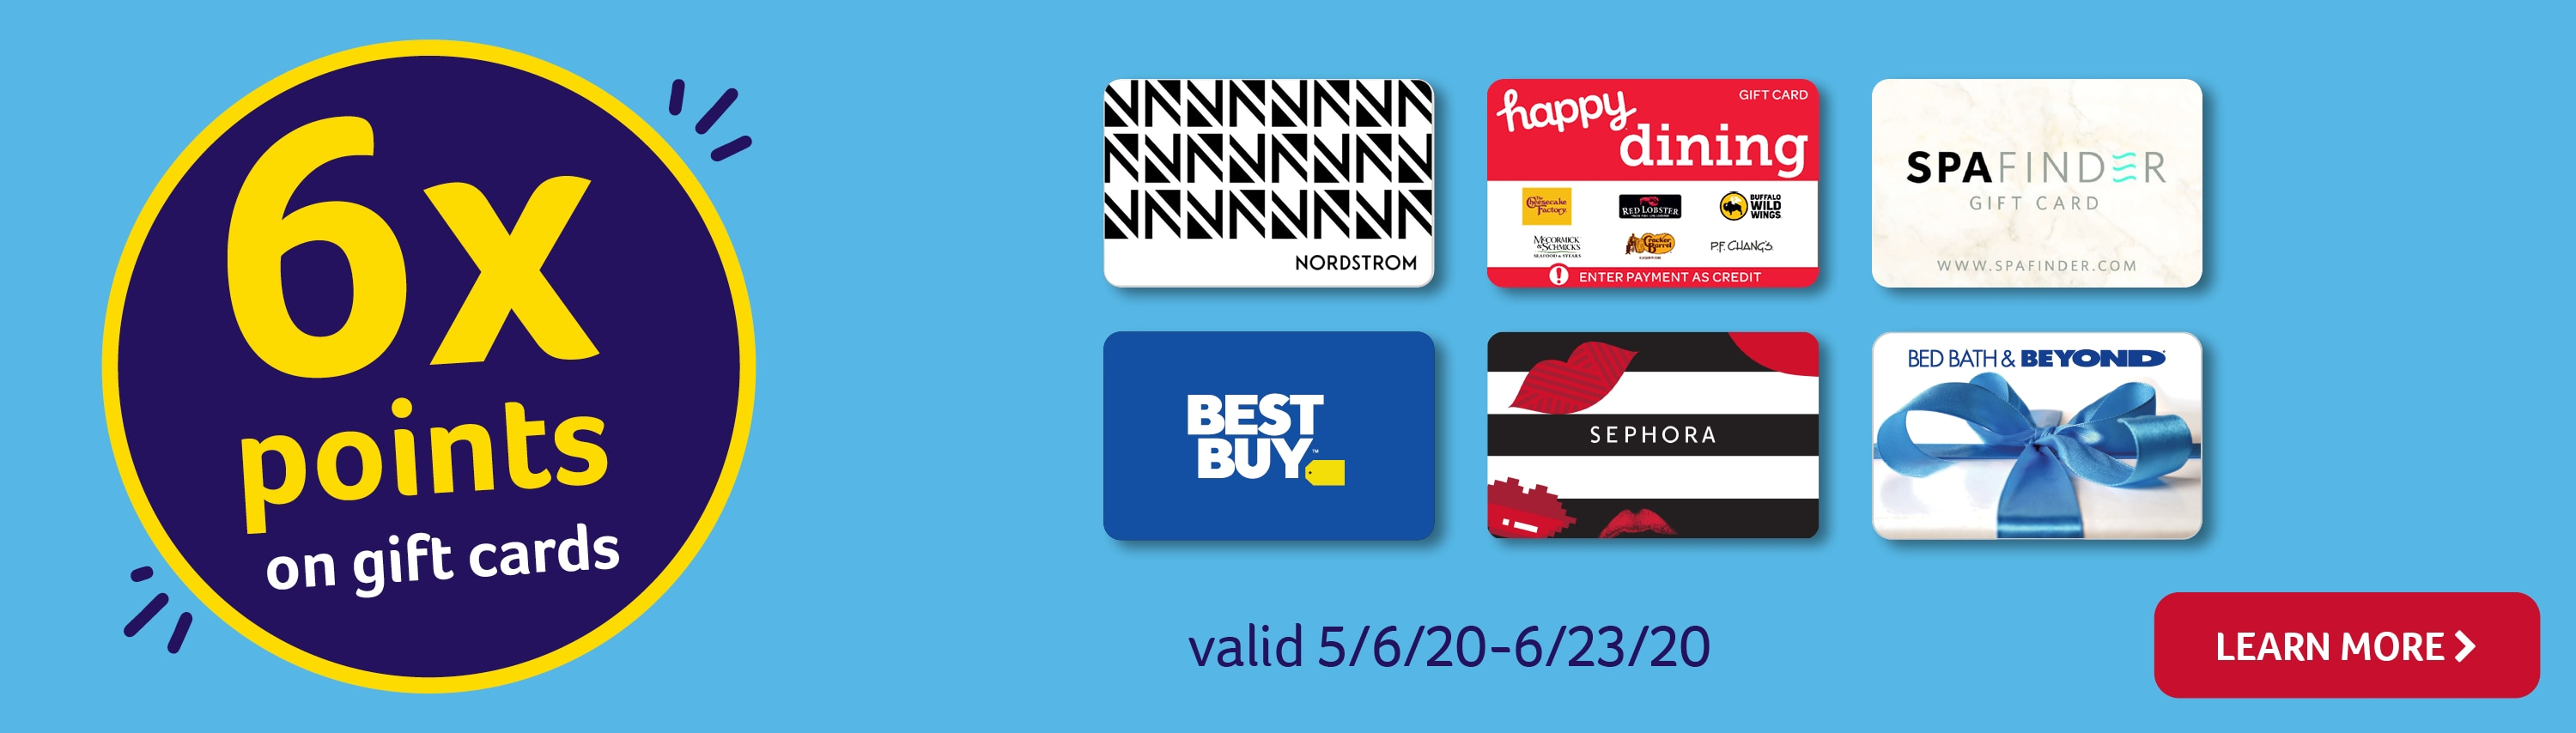 6x points on gift cards